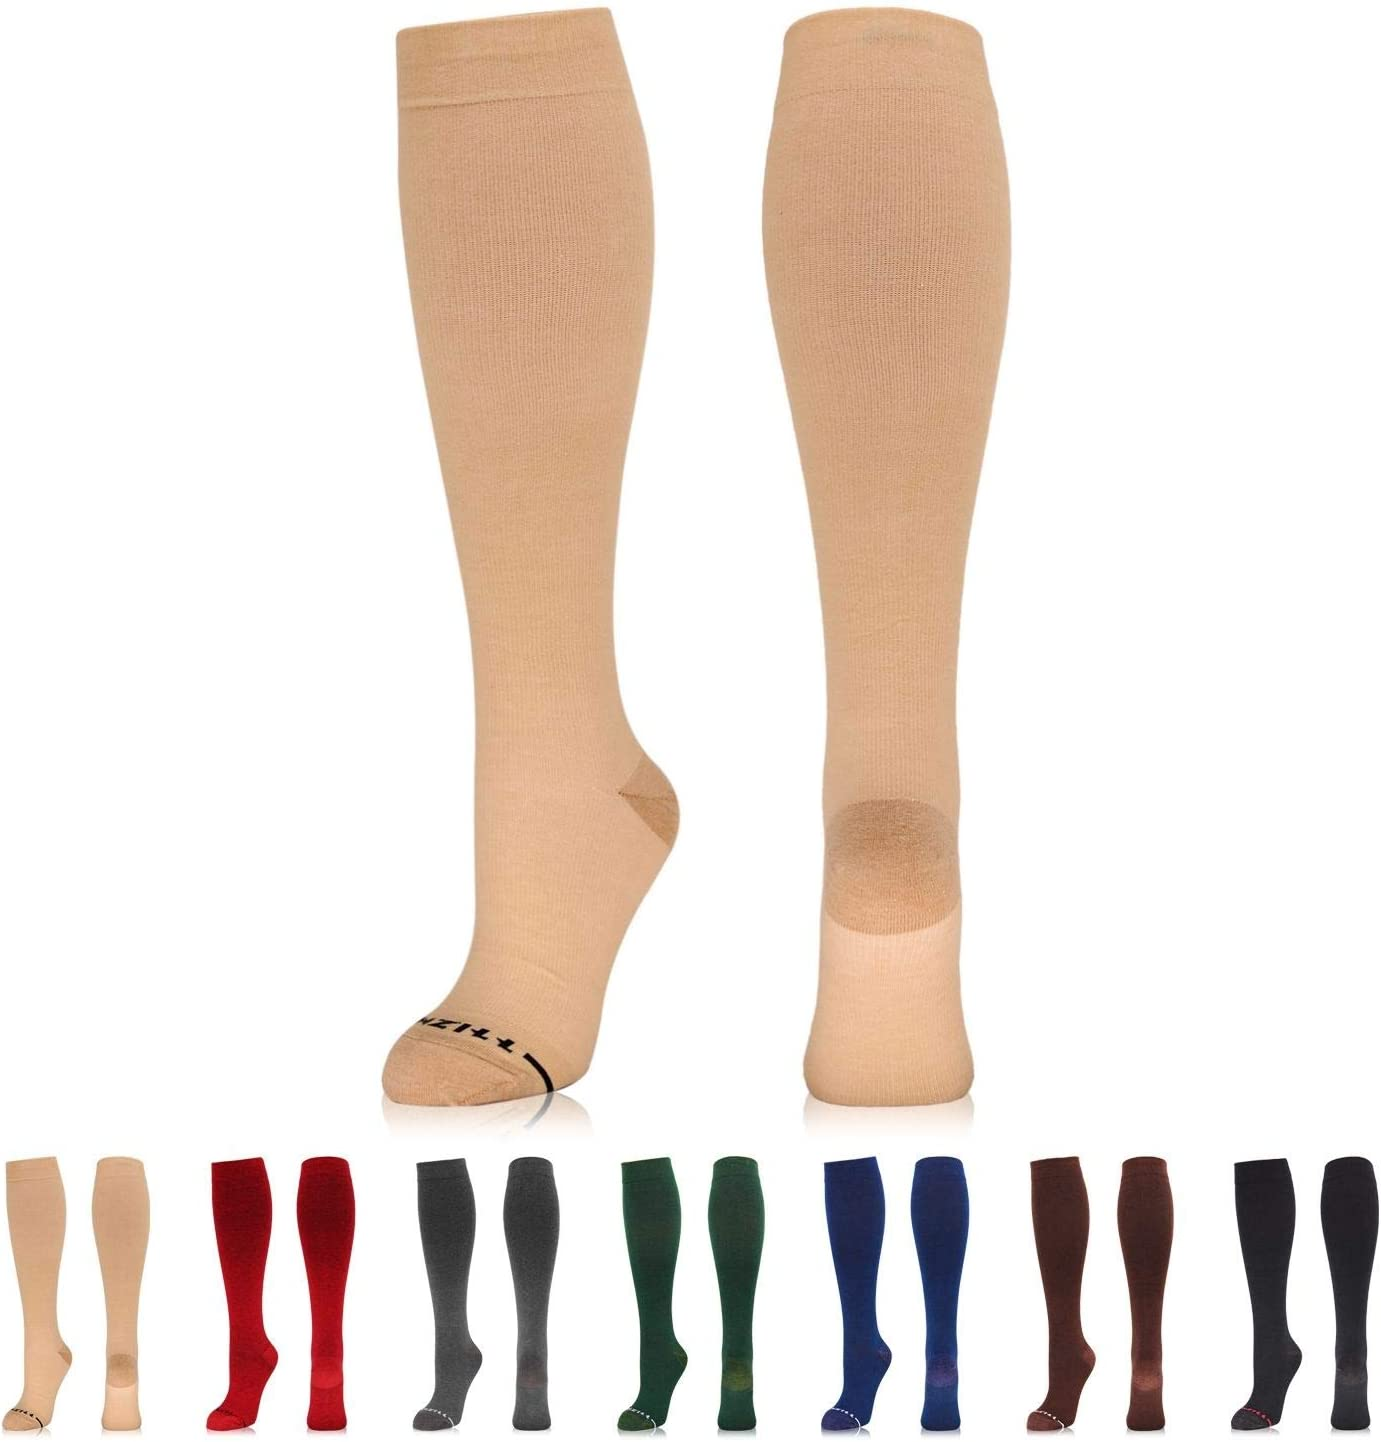 NEWZILL Copper-Infused Cotton Compression Sock (15-20 mmHg) for Men & Women